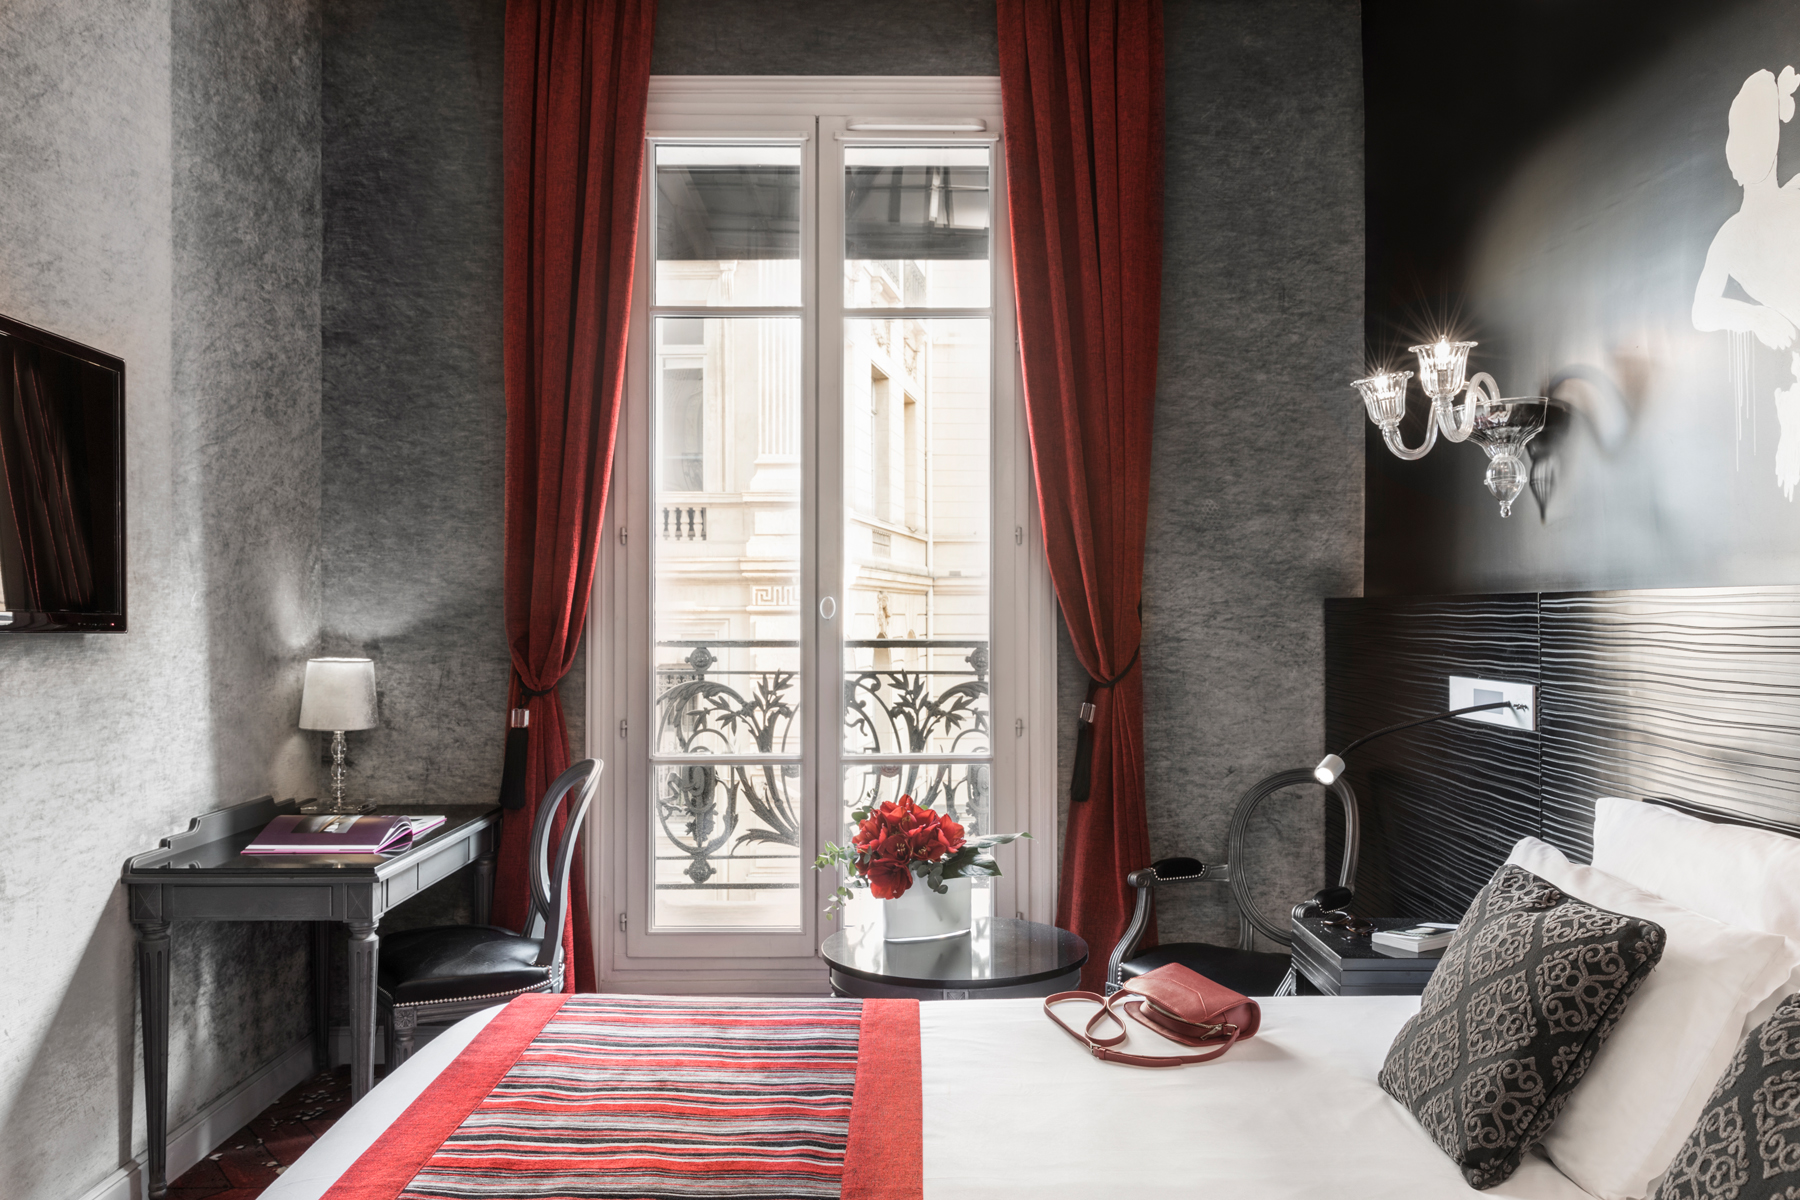 101/Champs Elysees/Chambres/PAGE CHAMBRE - SECTION 2 - CHAMBRE SUPERIEURE 3.jpg